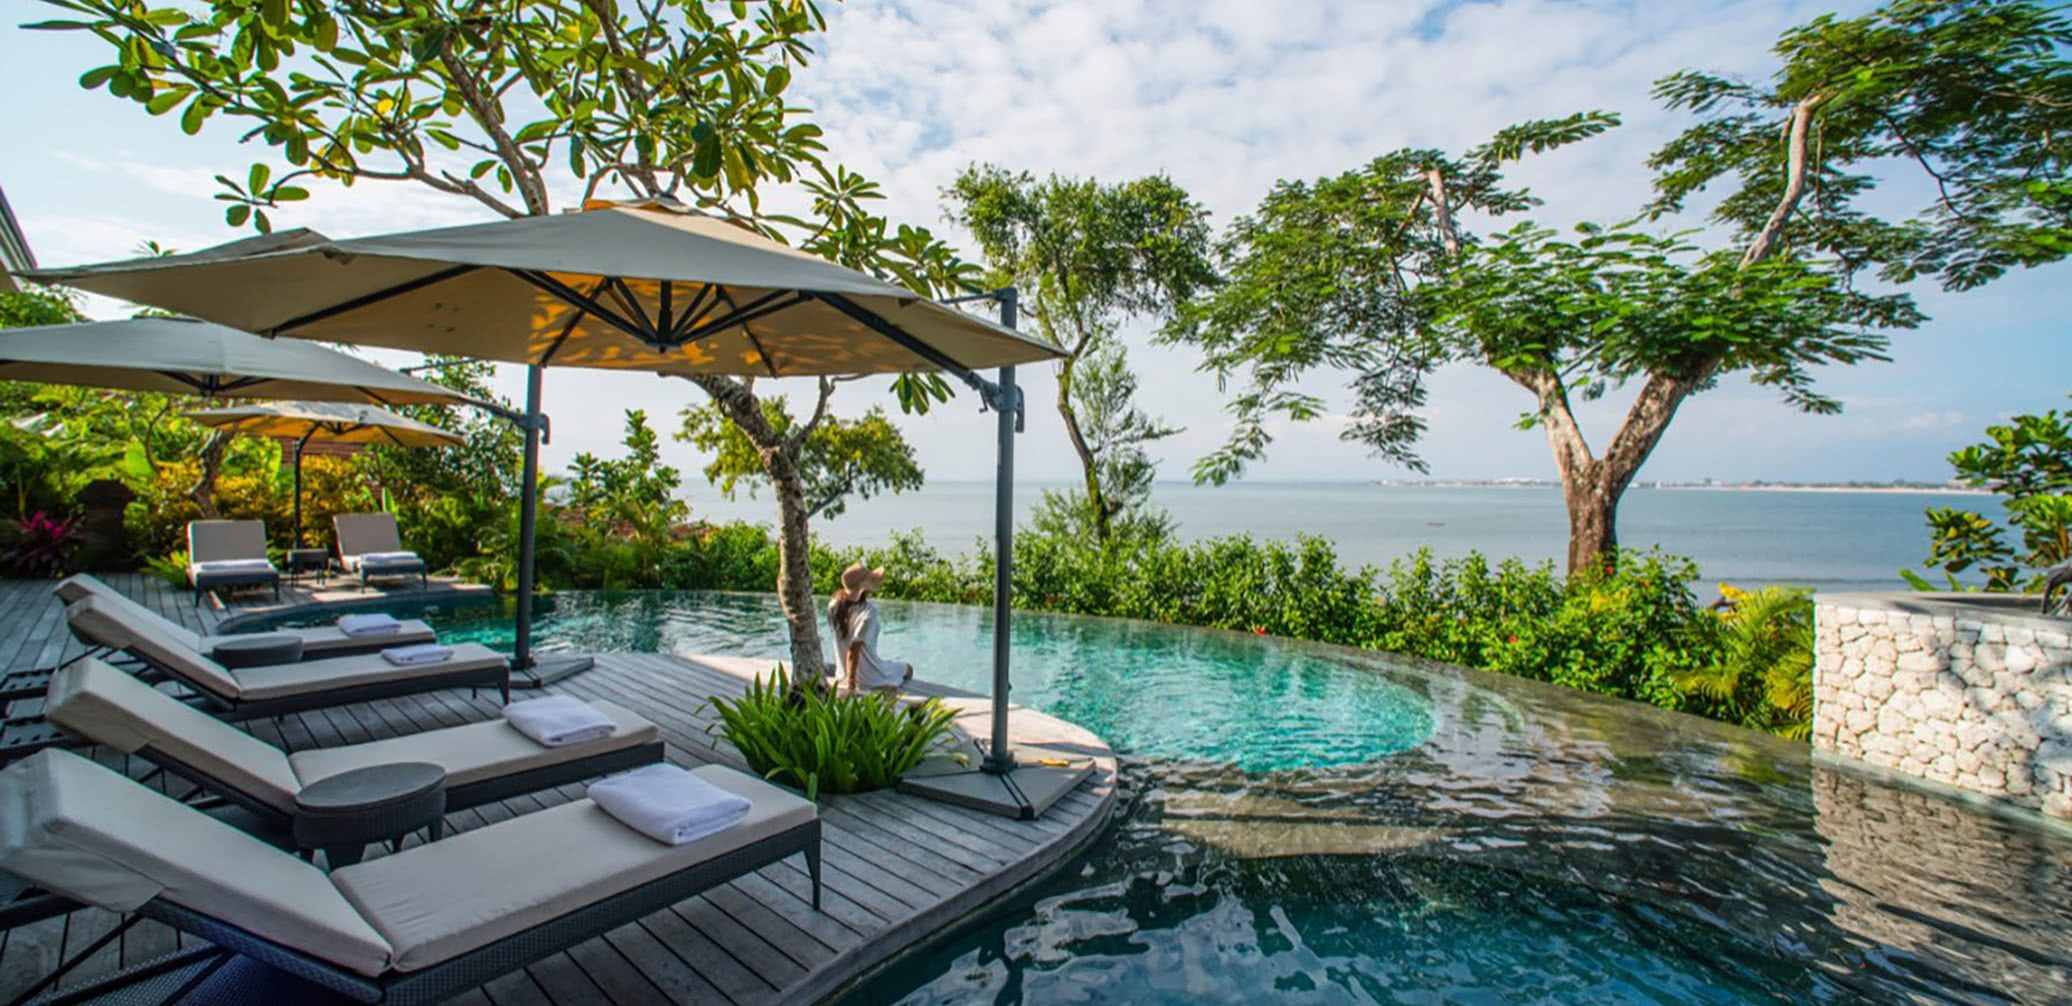 Top 10 Best Luxury Hotels In Bali Accommodation Tips Luxury Travel Diary